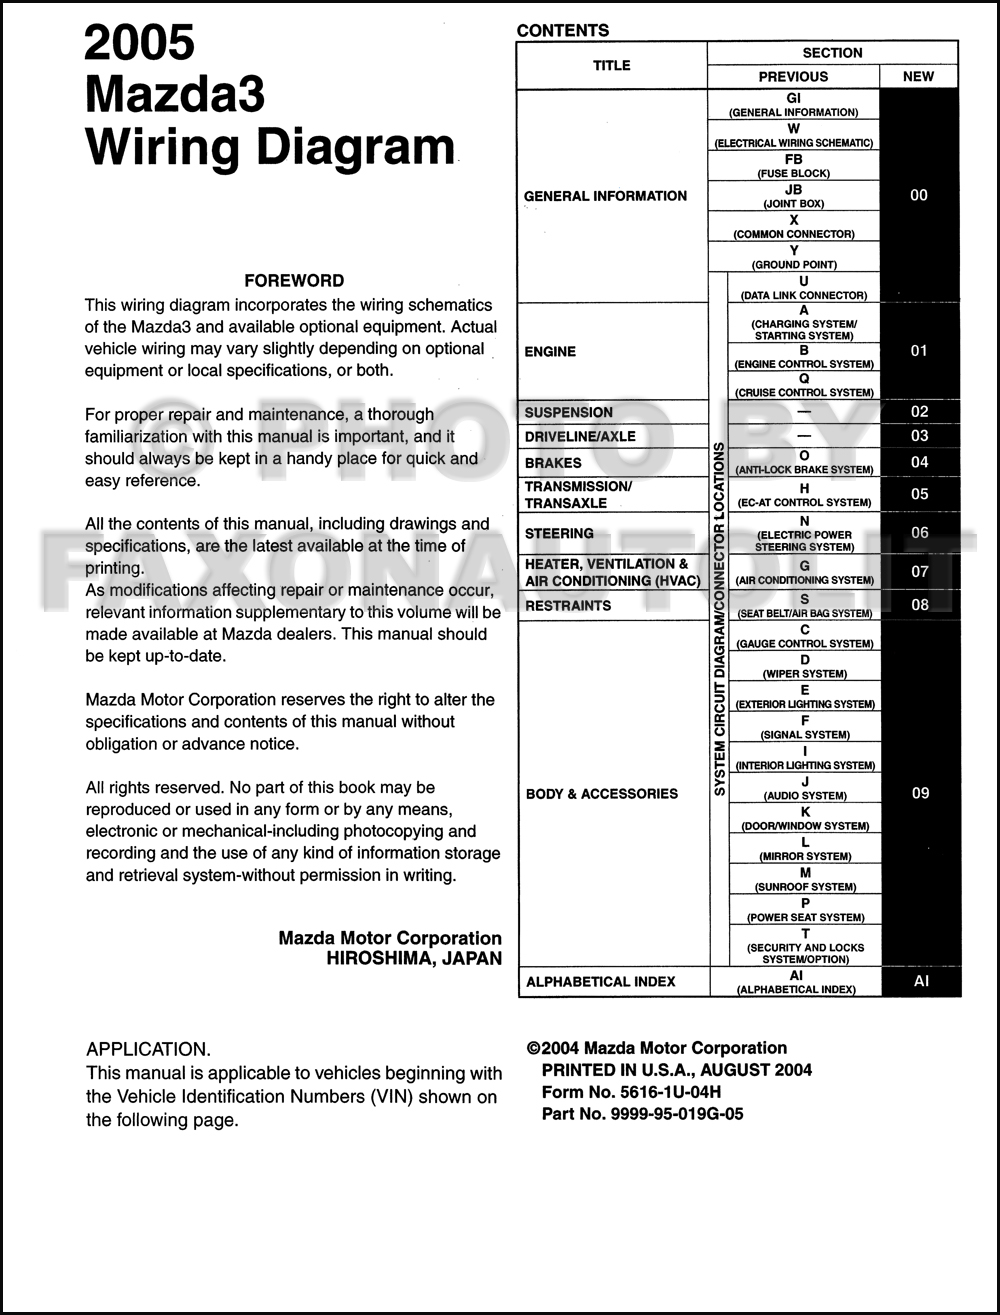 2005 mazda 3 wiring diagram manual original 2005 mazda 3 wiring diagram manual original click on thumbnail to zoom cheapraybanclubmaster Choice Image